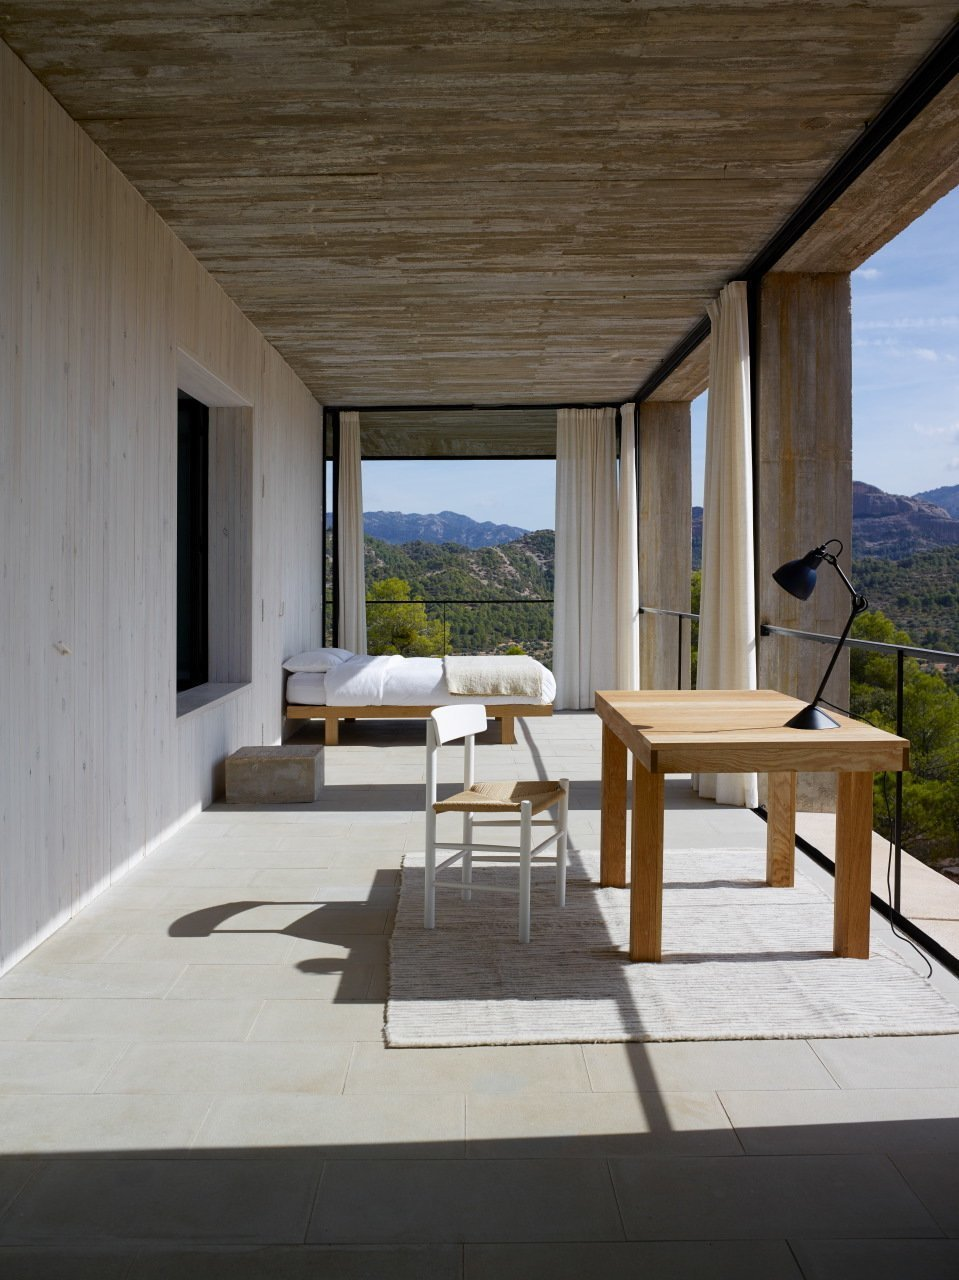 At Casa Solo Pezo, a holiday rental property in Aragon, Spain, architect Pezo Von Ellrichshausen of Solo Office follows the proportions and interior layouts of traditional Mediterranean homes with a strong indoor/outdoor connection, and created a bedroom within a balcony terrace.  Photo 6 of 11 in 7 Ways to Make the Most of Your Balcony